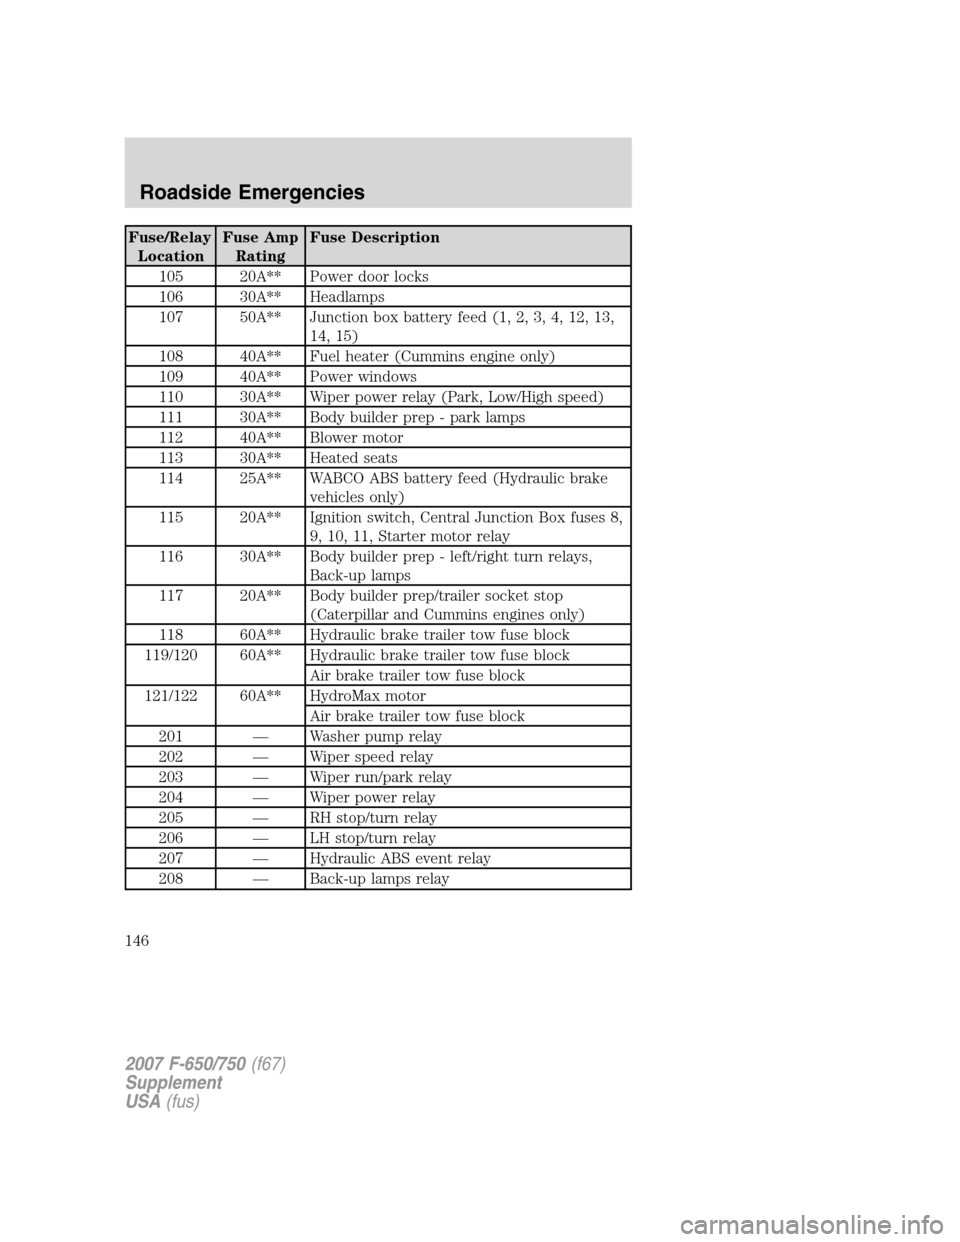 FORD F650 2007 11.G Owners Manual, Page 146. Fuse/Relay